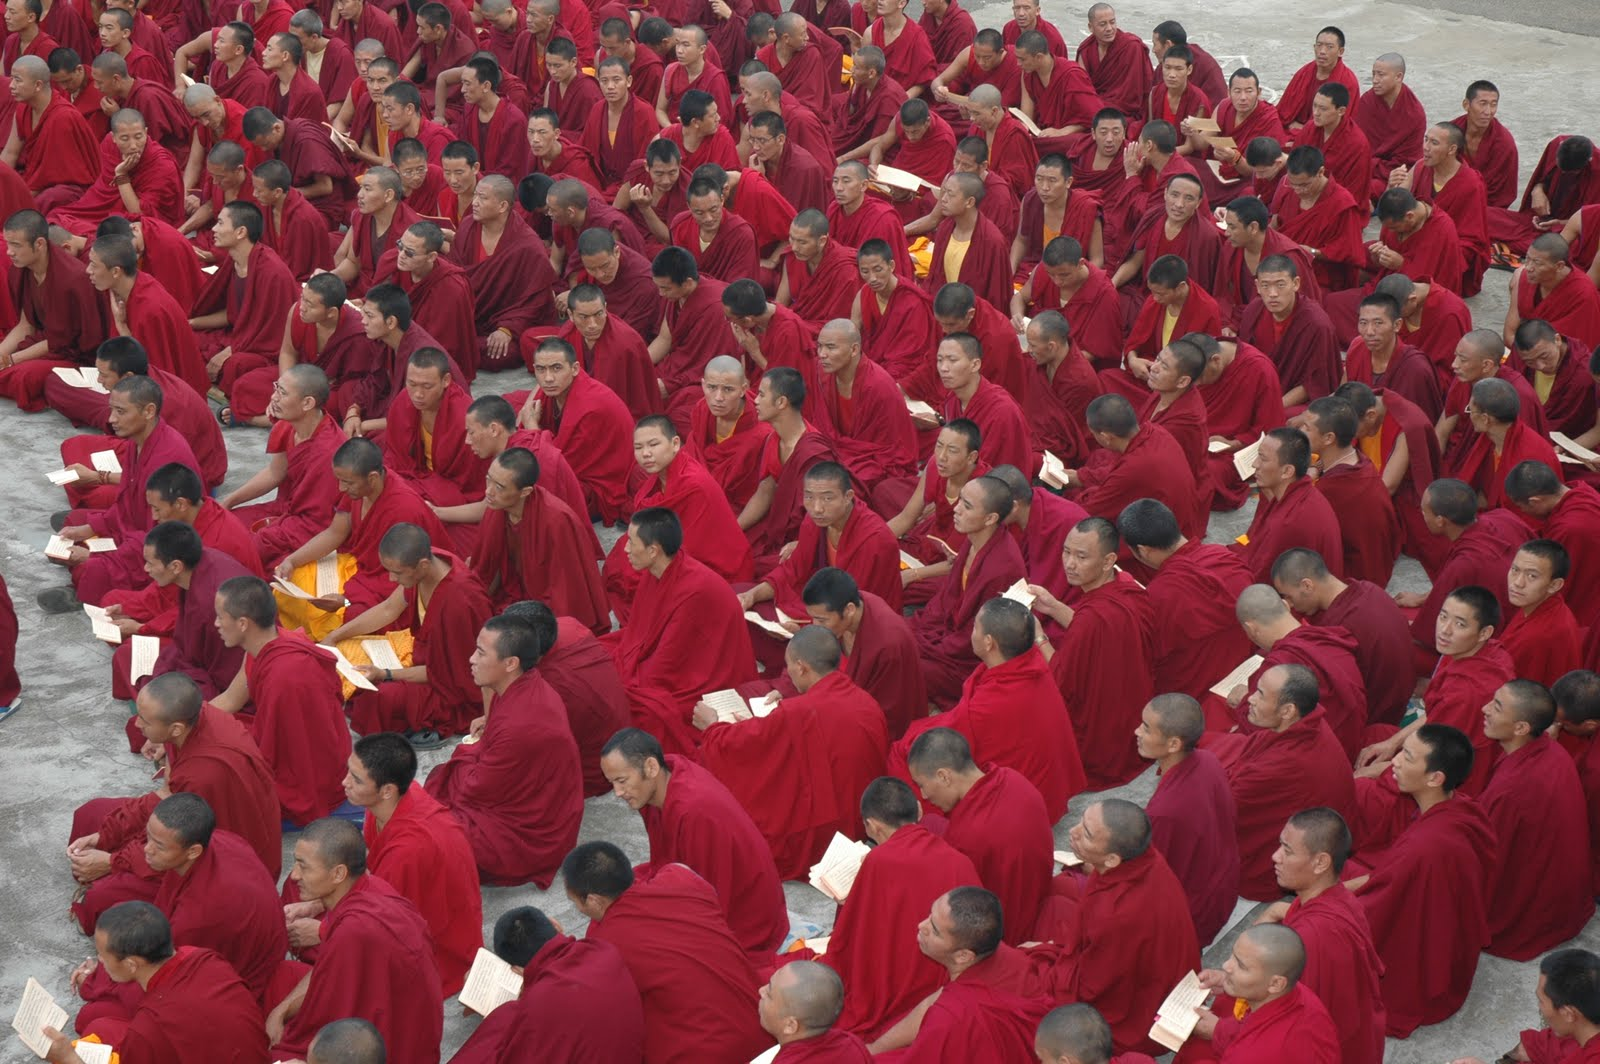 Monks doing puja and prayers in the courtyard of Sera Je Monastery